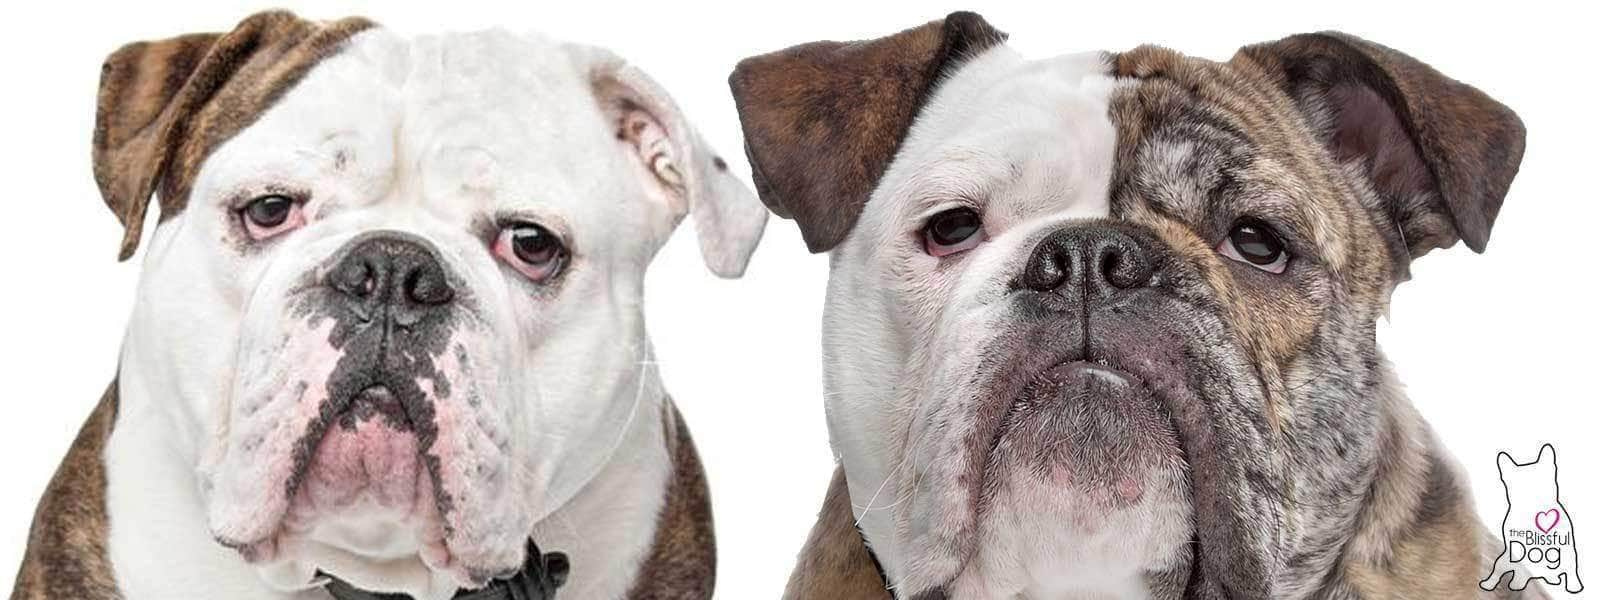 The Olde English Bulldogge History The Realization Of A Dream